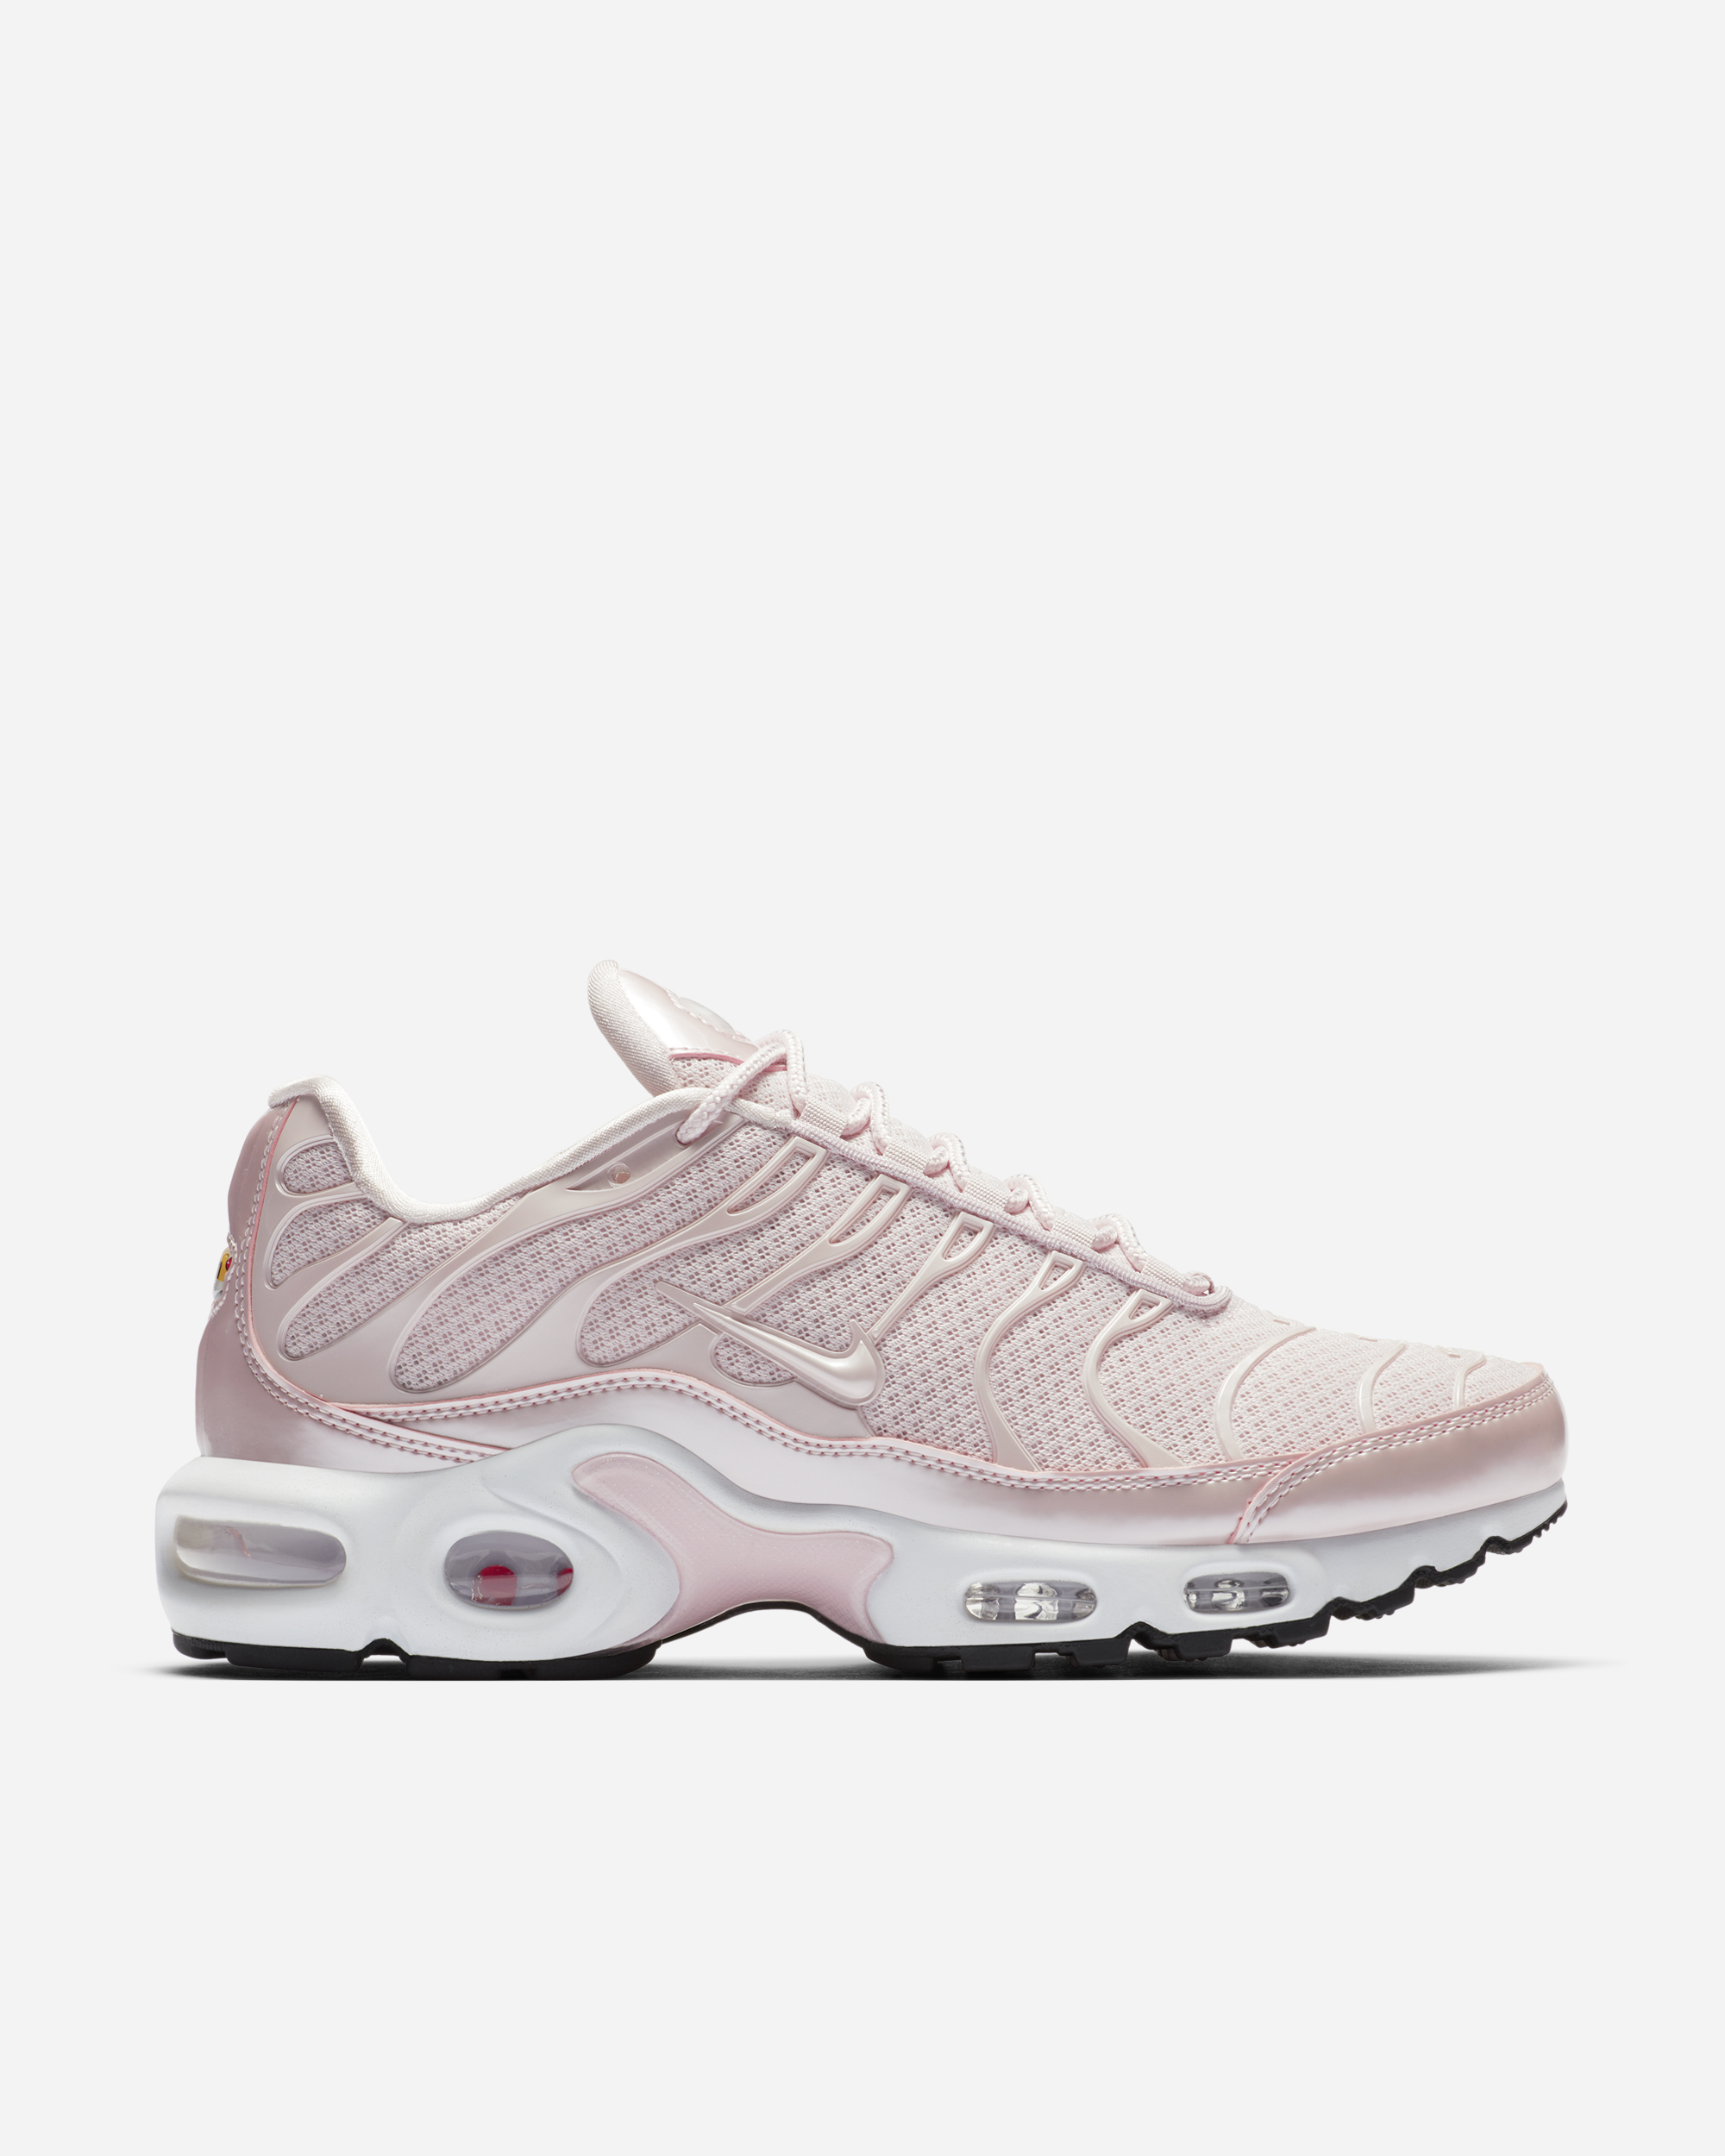 cheapest new lifestyle outlet for sale Nike Sportswear Air Max Plus TN Premium Barely Rose/Black ...